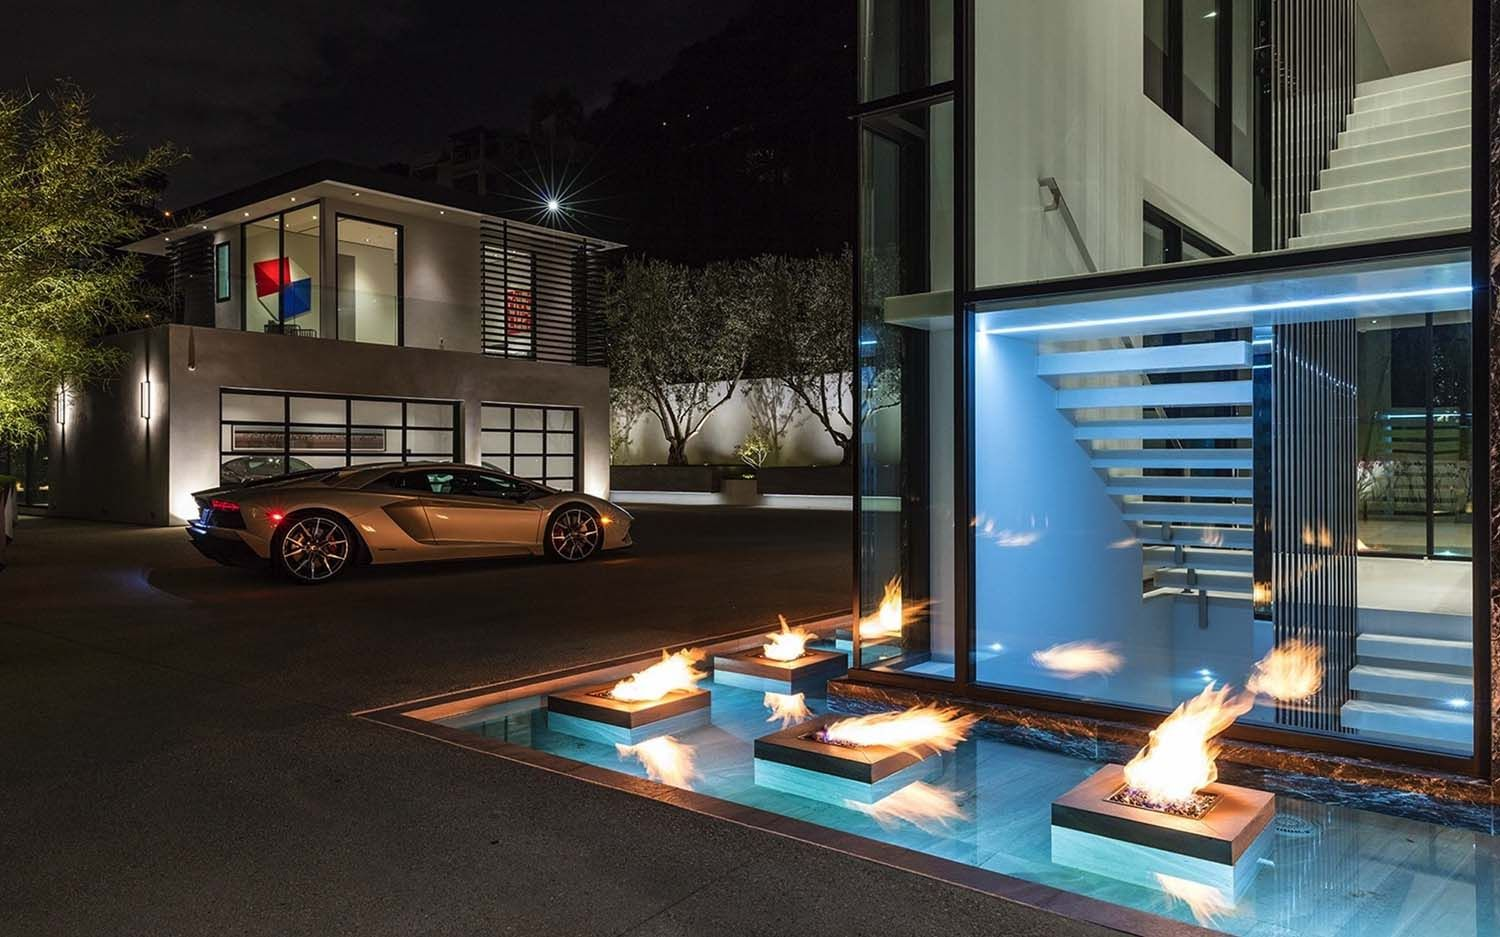 Sumptuous Luxury Modern Home With Views Over The La Skyline Luxury Modern Homes Hollywood Hills Homes Luxury Property